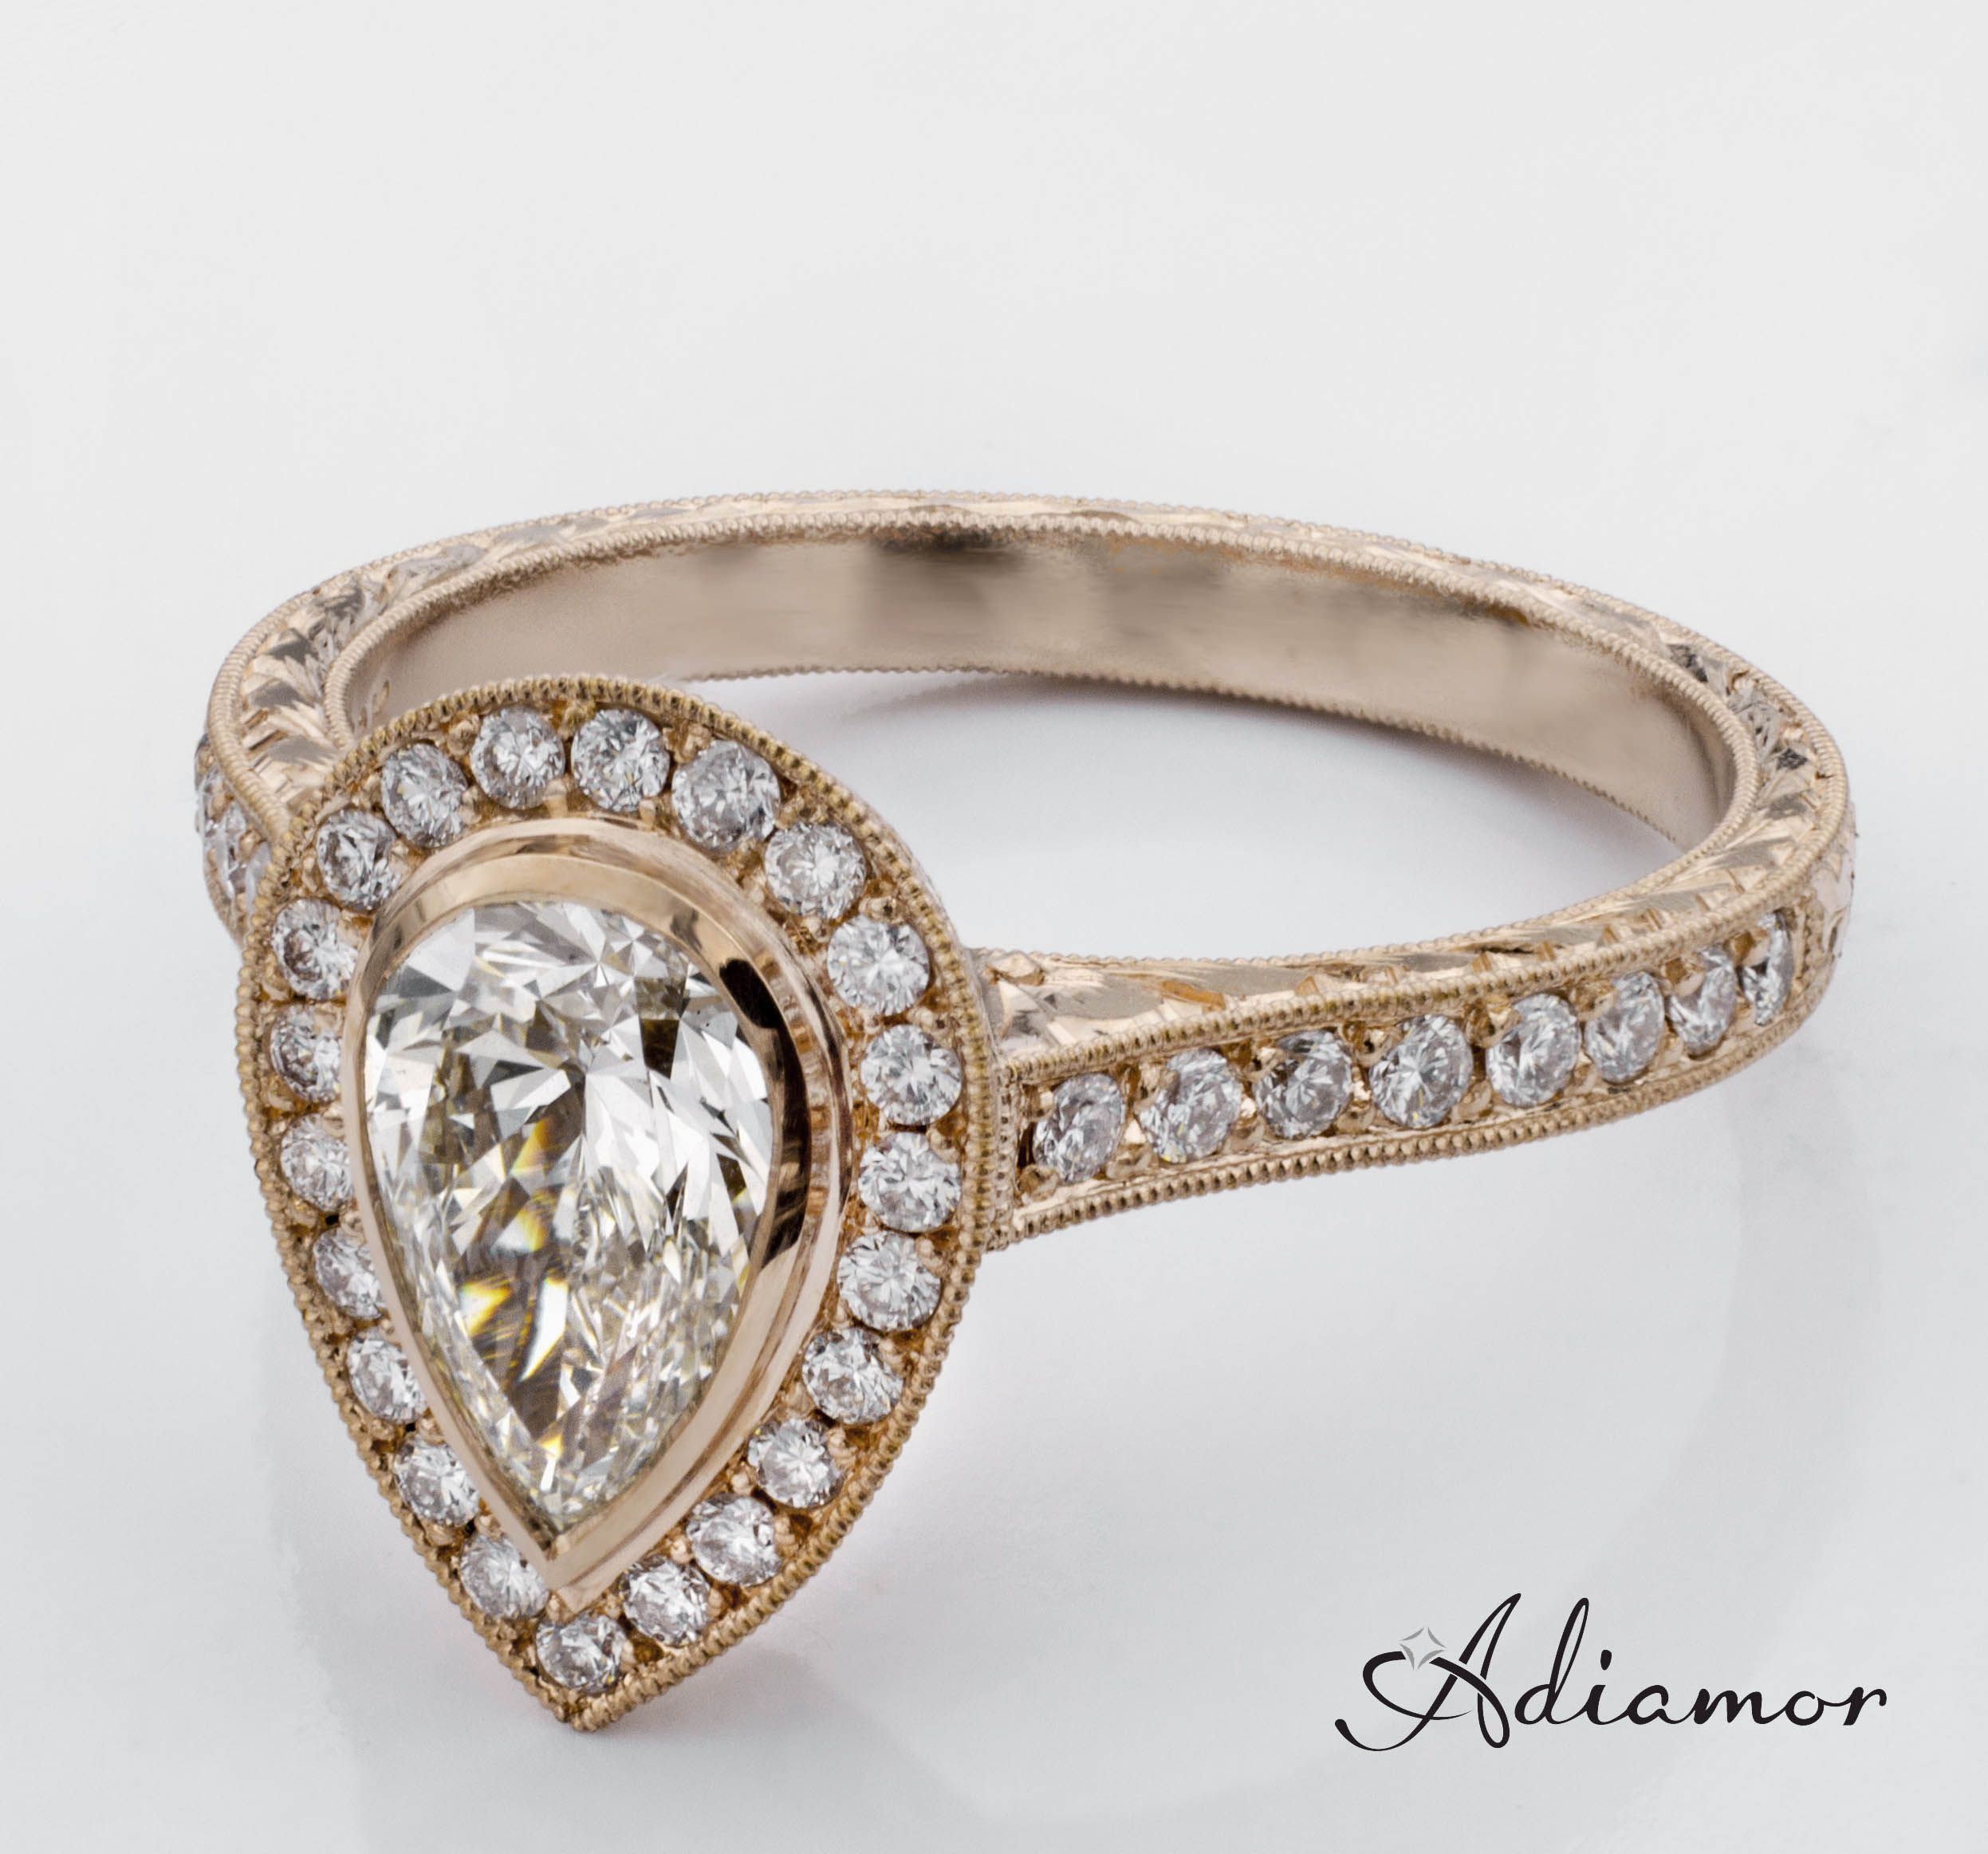 ct diamond view products rings rose cut valerie eva shield engagement madison ring profile